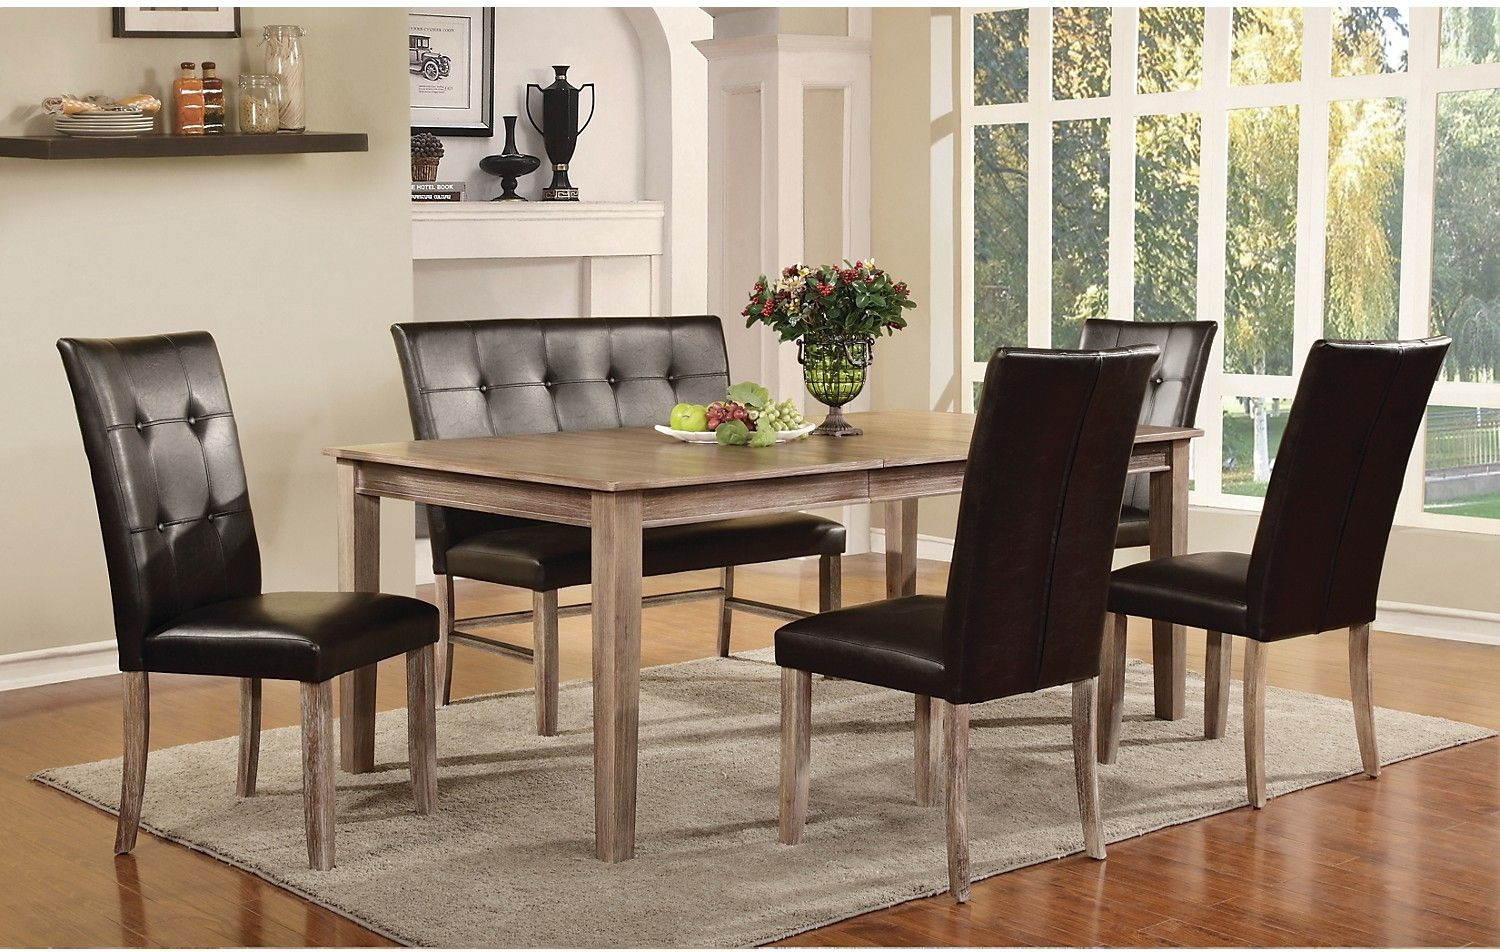 Kadyn 7 Piece Dining Package The Brick Modern Dining Room Set